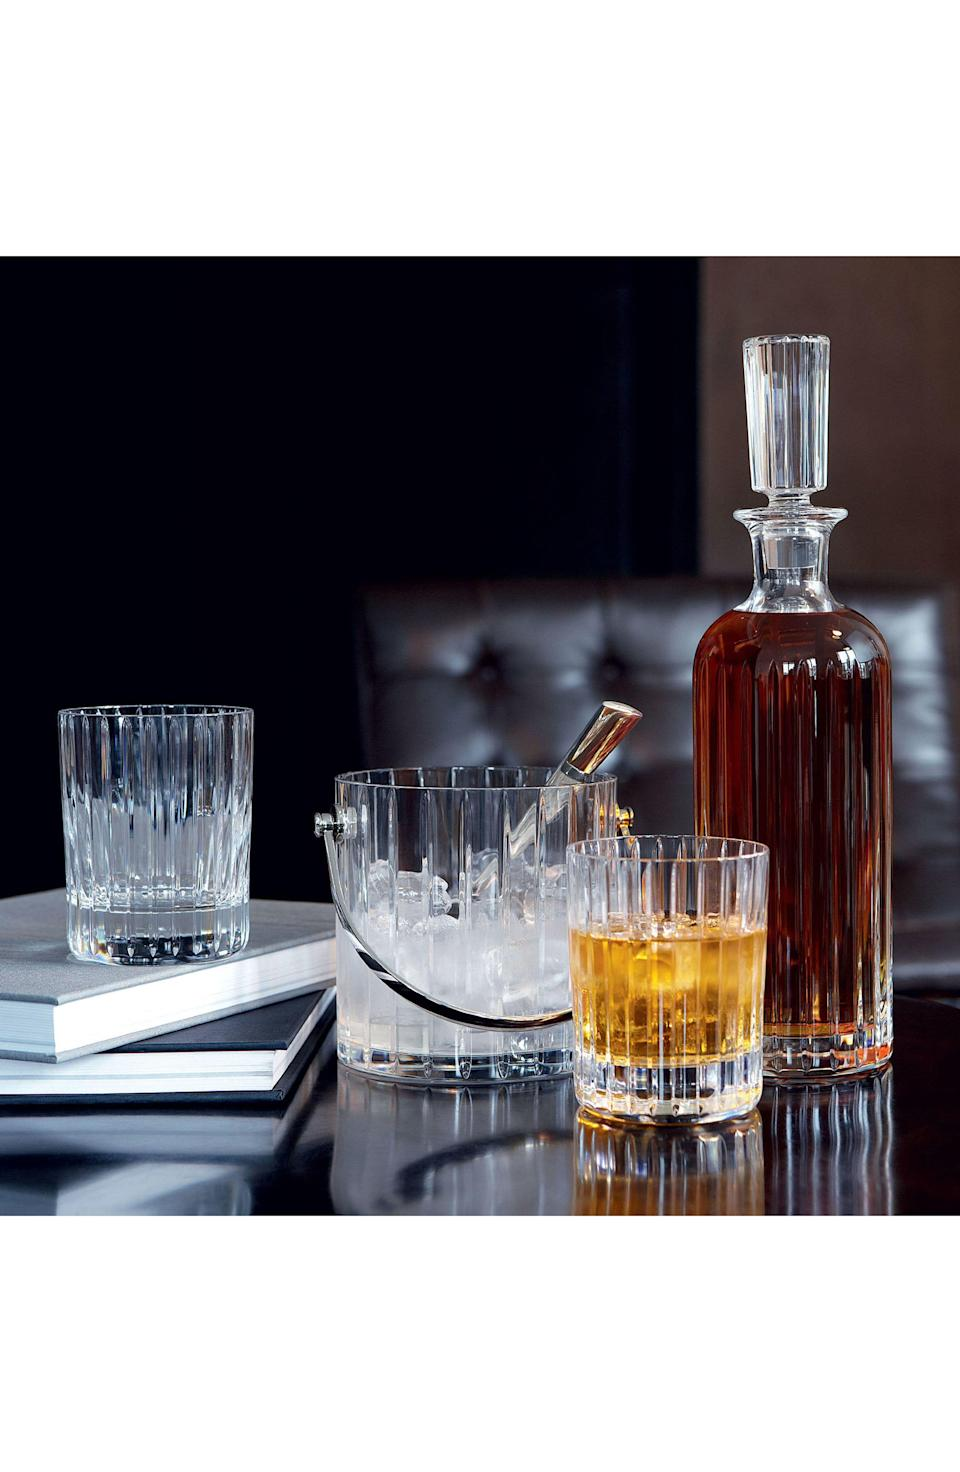 """<p><strong>Baccarat</strong></p><p>nordstrom.com</p><p><strong>$280.00</strong></p><p><a href=""""https://go.redirectingat.com?id=74968X1596630&url=https%3A%2F%2Fshop.nordstrom.com%2Fs%2Fbaccarat-harmonie-2-set-of-2-lead-crystal-tumblers%2F5054891&sref=https%3A%2F%2Fwww.veranda.com%2Fshopping%2Fhome-accessories%2Fg34671332%2Fgifts-for-foodies%2F"""" rel=""""nofollow noopener"""" target=""""_blank"""" data-ylk=""""slk:Shop Now"""" class=""""link rapid-noclick-resp"""">Shop Now</a></p><p>Their enviable bourbon collection deserves the right glassware. Baccarat's crystal tumblers are timeless, iconic, and perfect for the spirits enthusiast. </p>"""